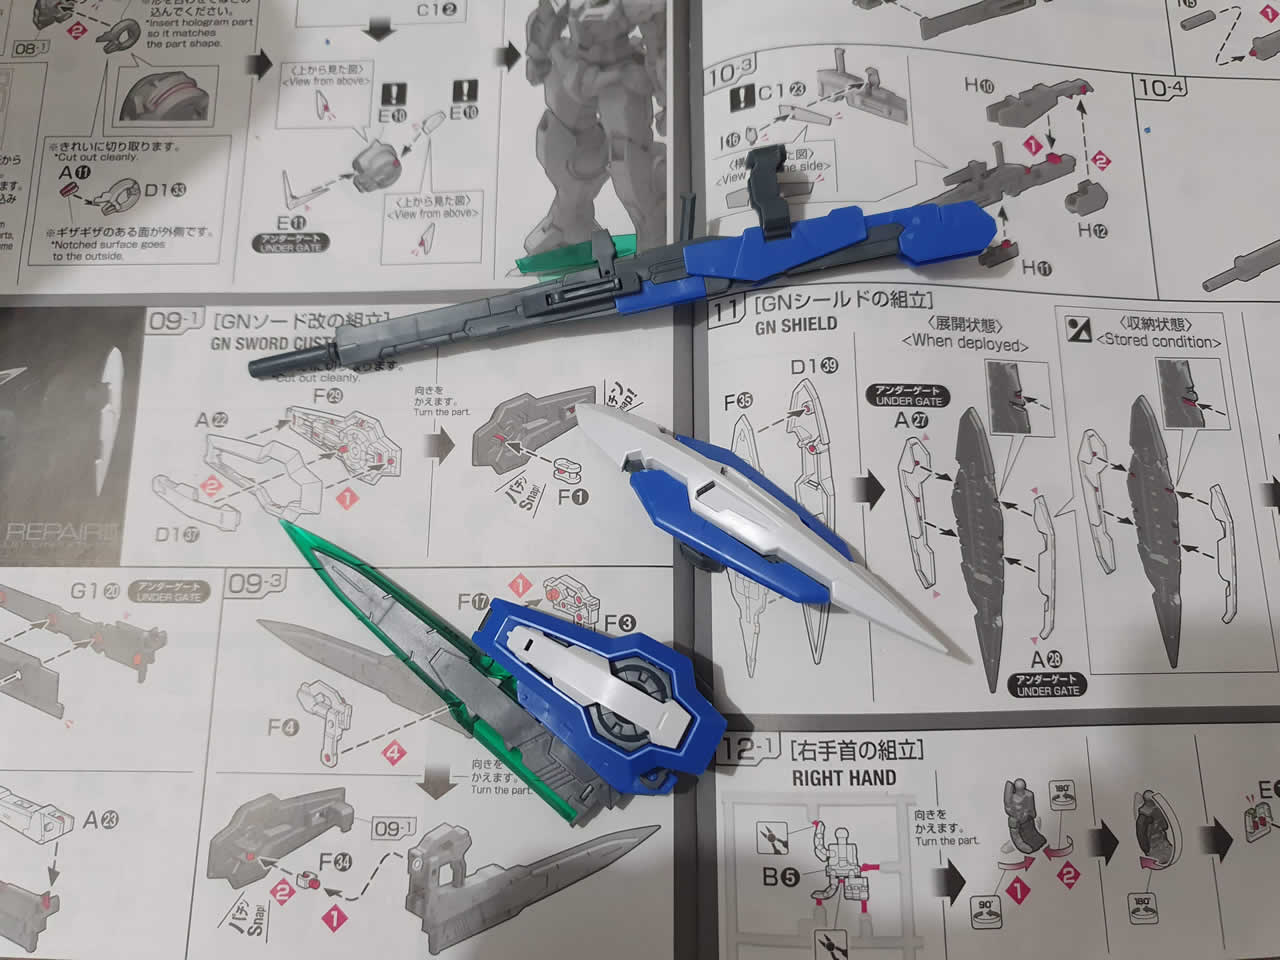 Exia Repair RG Assembled Weapons and Shield